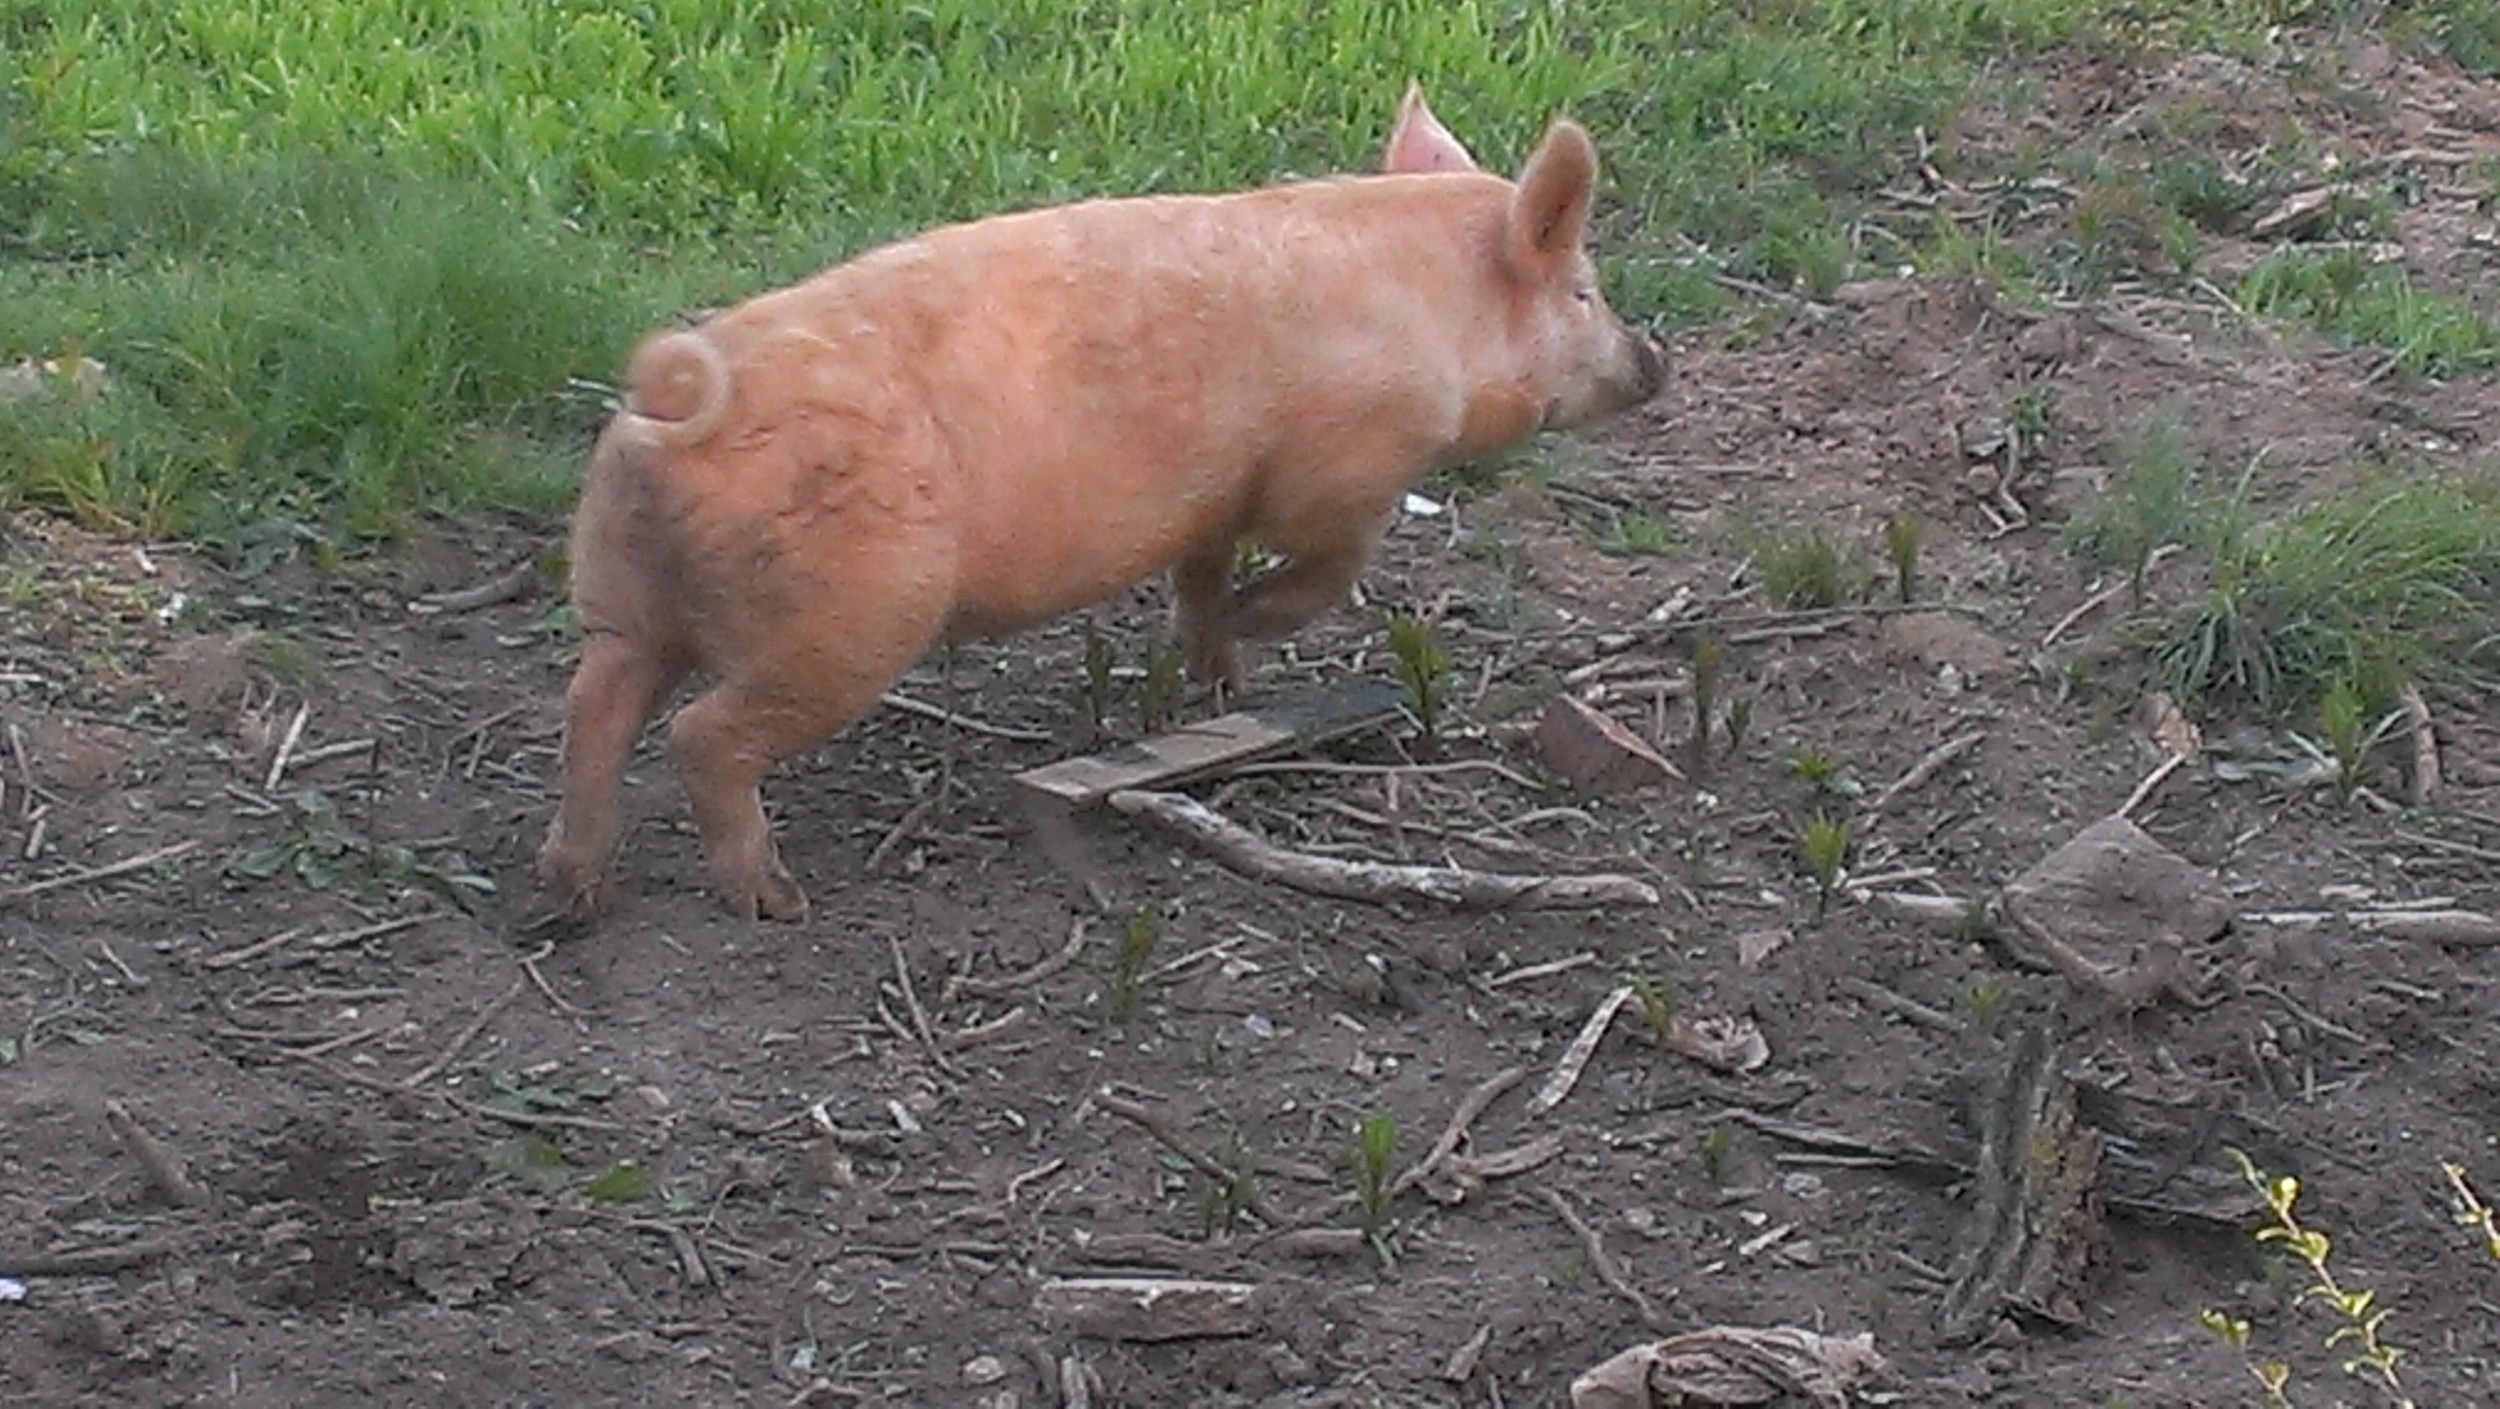 Escaping pig! You'd better run...Indy's on the job!